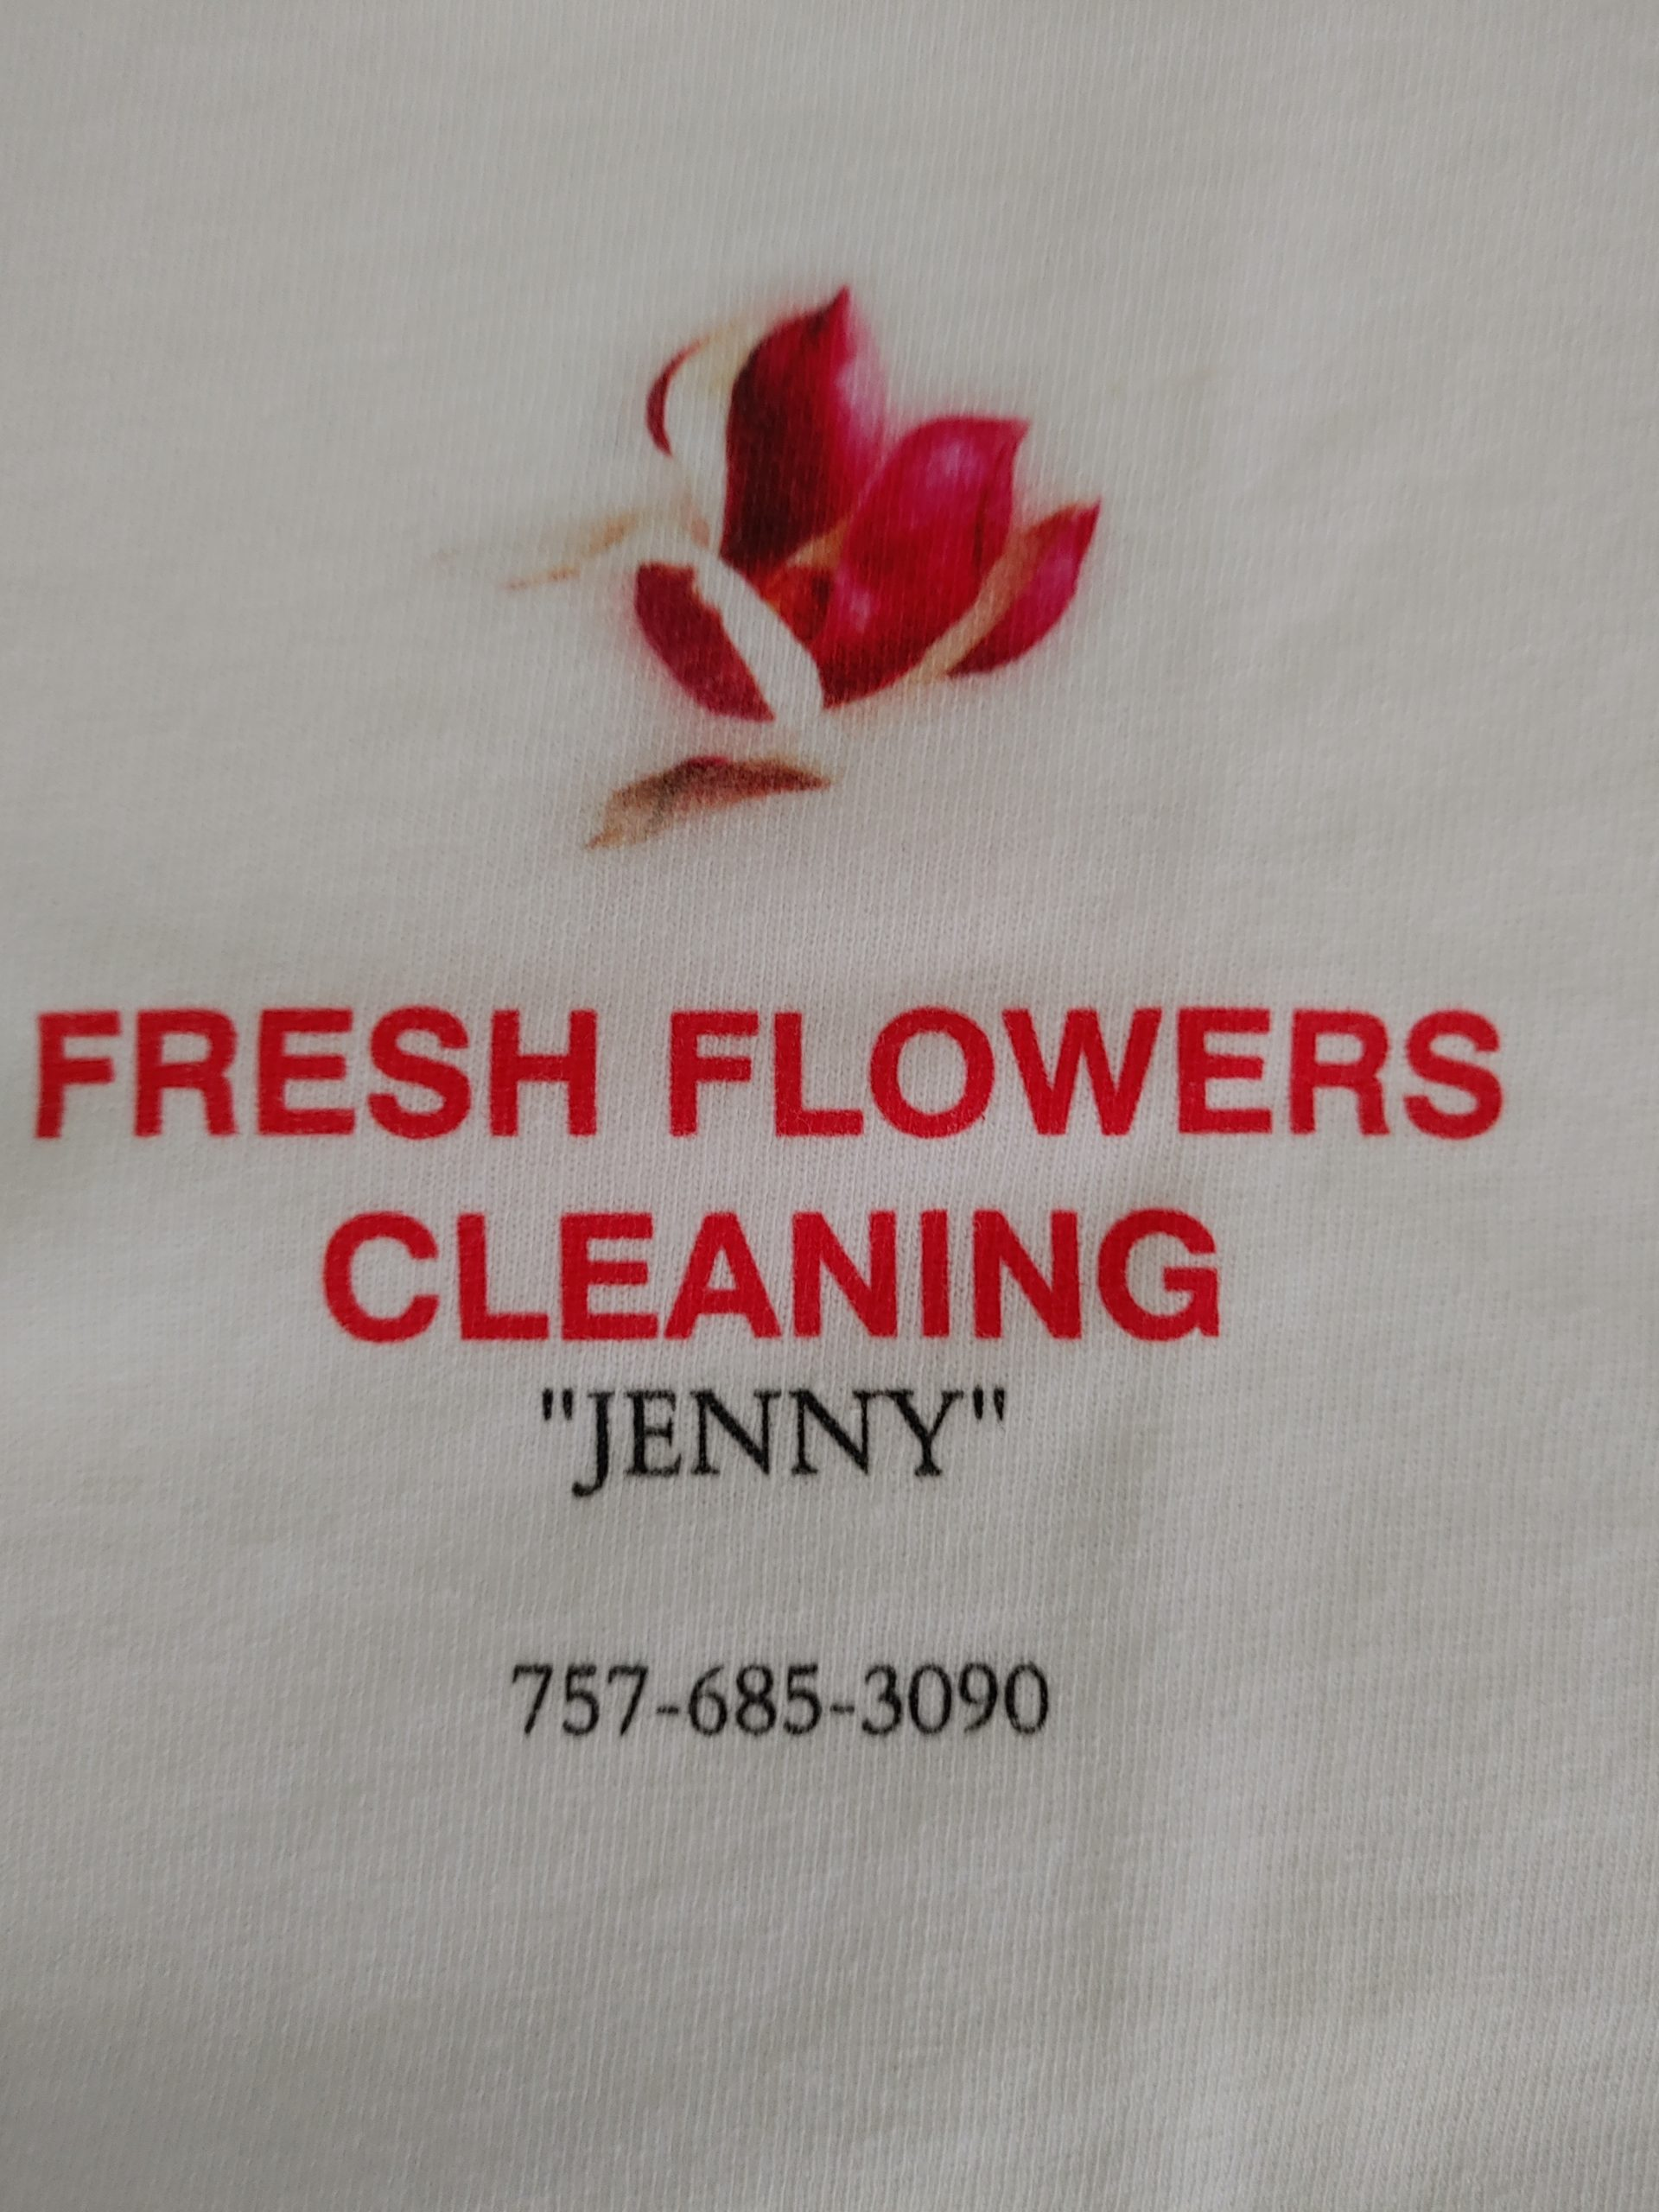 Fresh Flowers Cleaning LLC